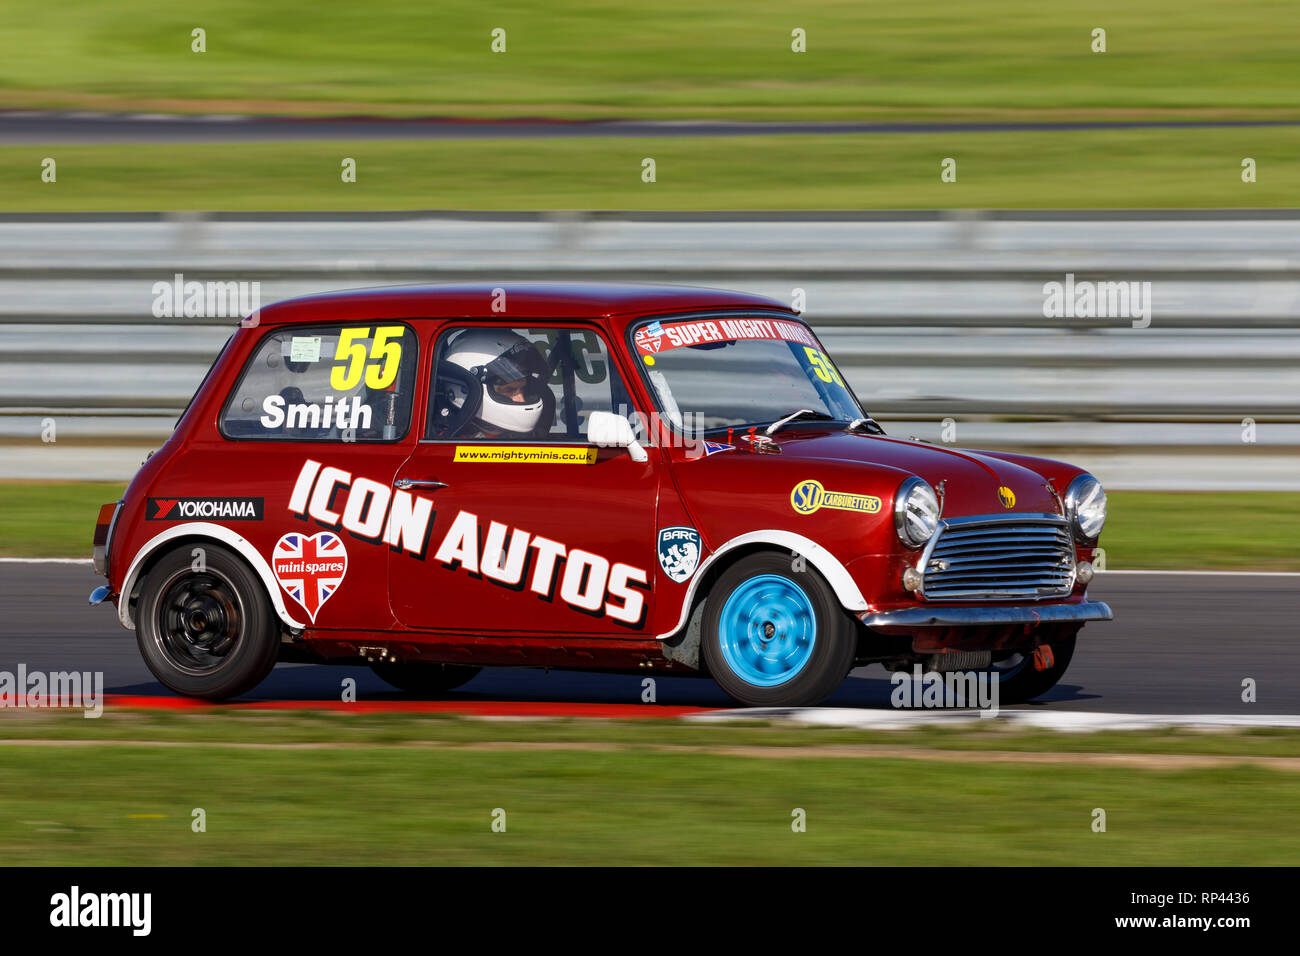 Jeff Smith in his Super Mighty Minis Championship race entrant at Snetterton 2018, Norfolk, UK. - Stock Image